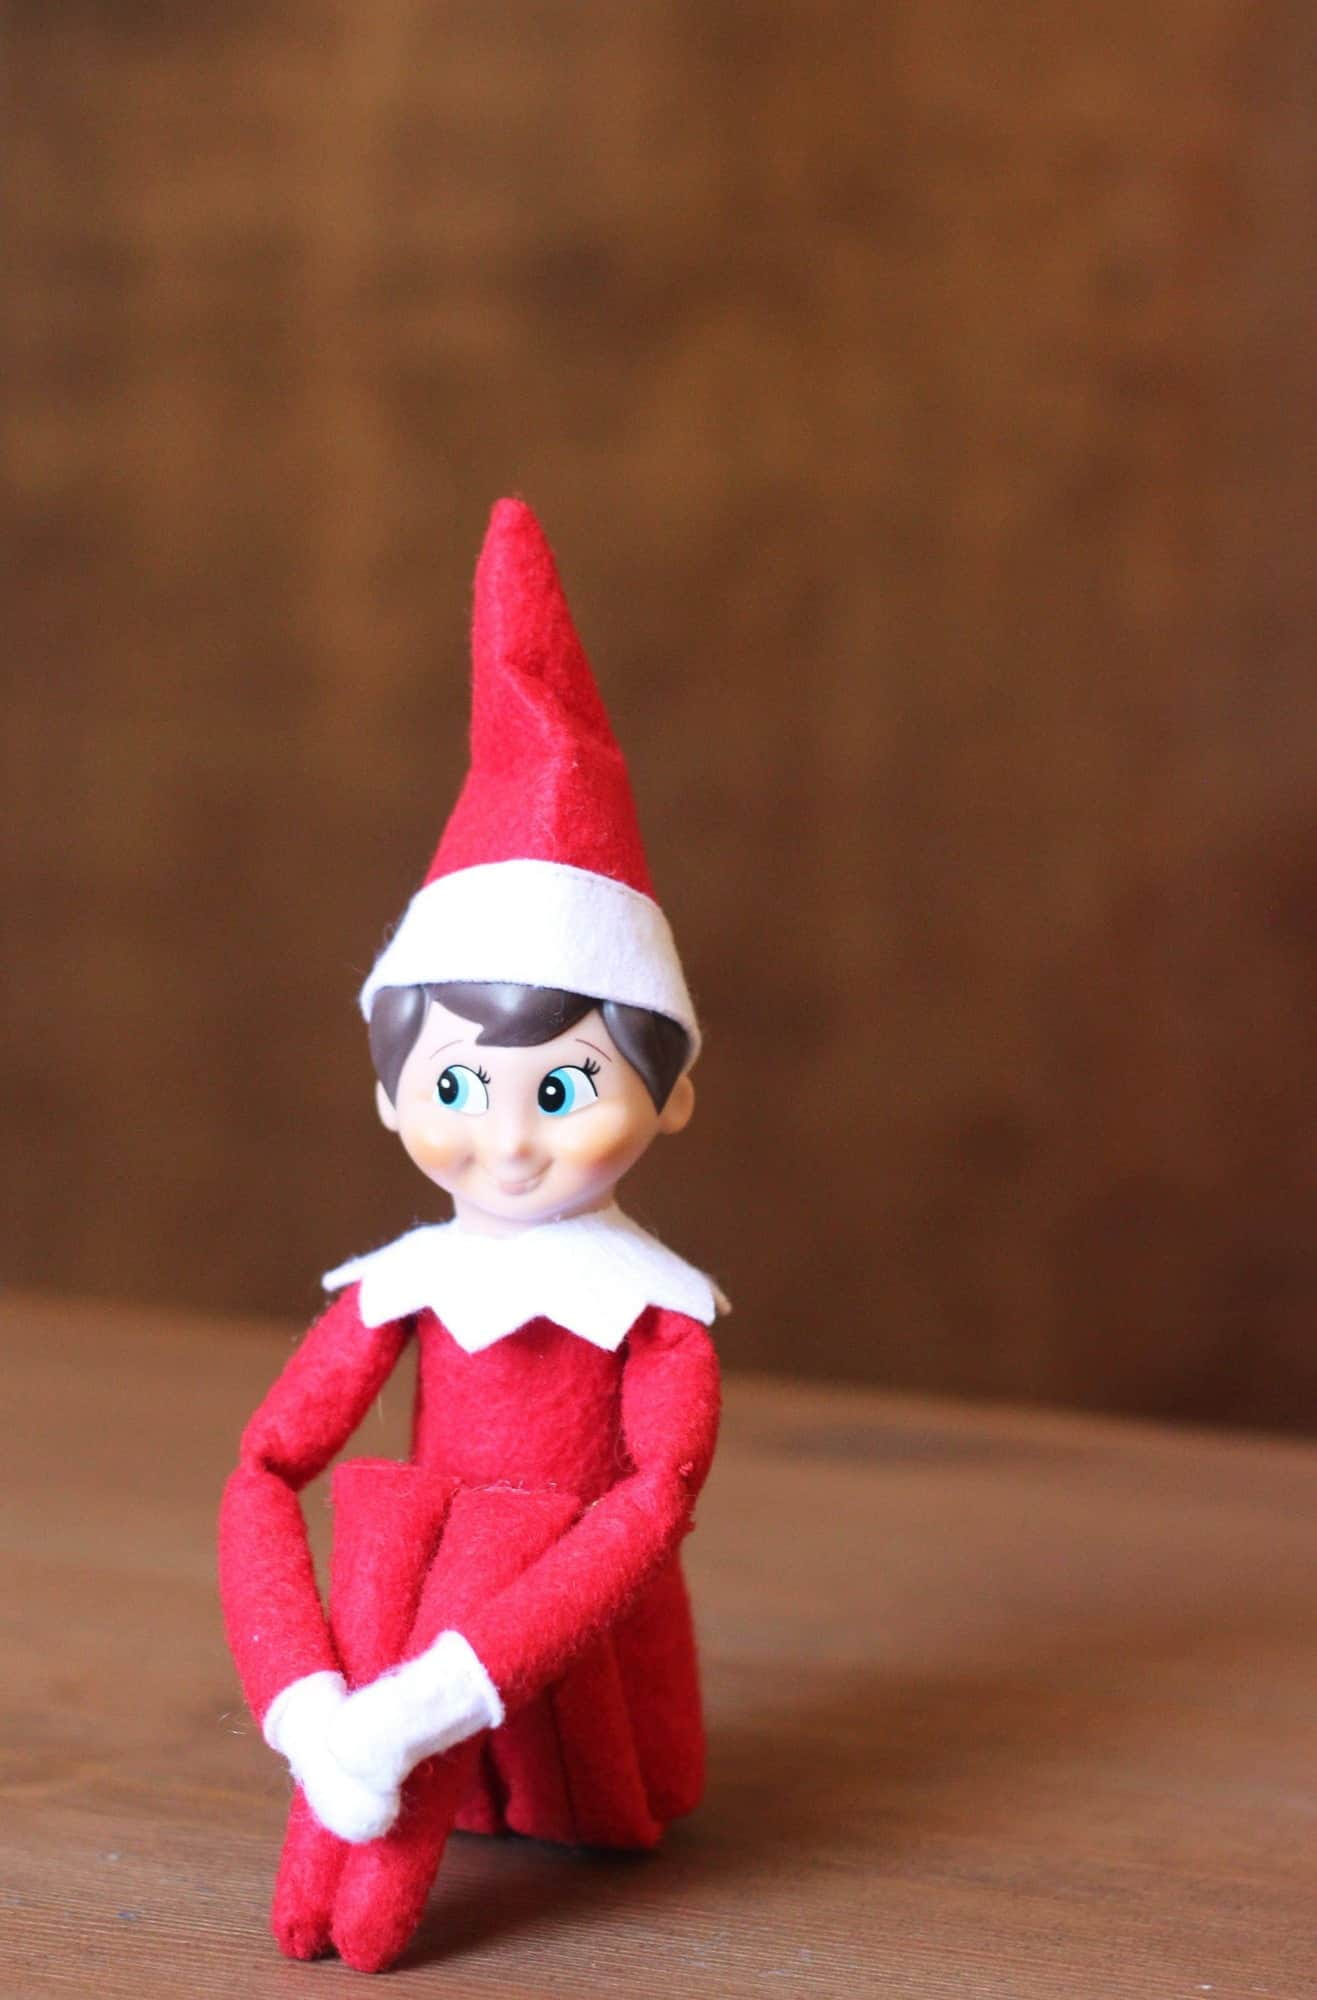 Elf on the shelf sitting on a brown table with a brown background.